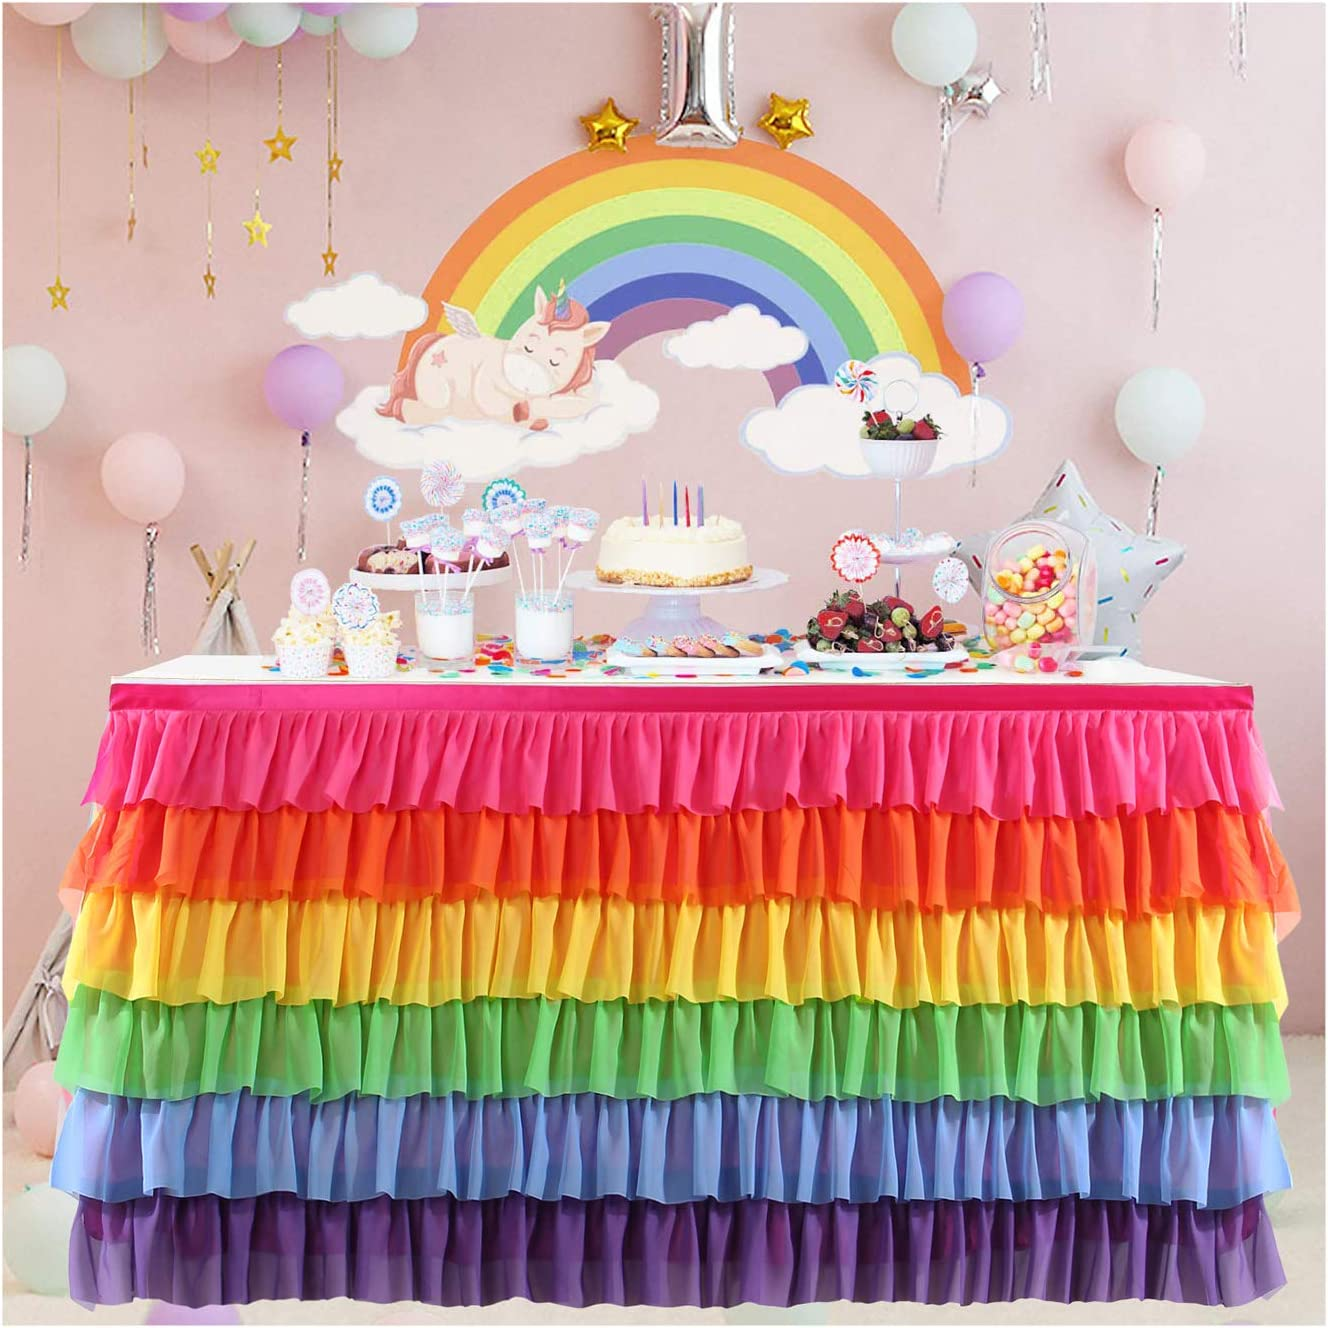 Rainbow Tutu Table Skirt 6ft 9ft 14ft Mermaid Party Baby Chiffon Table Cloth for Rectangle Round Table (Bright Rainbow, L9ft × H30in)